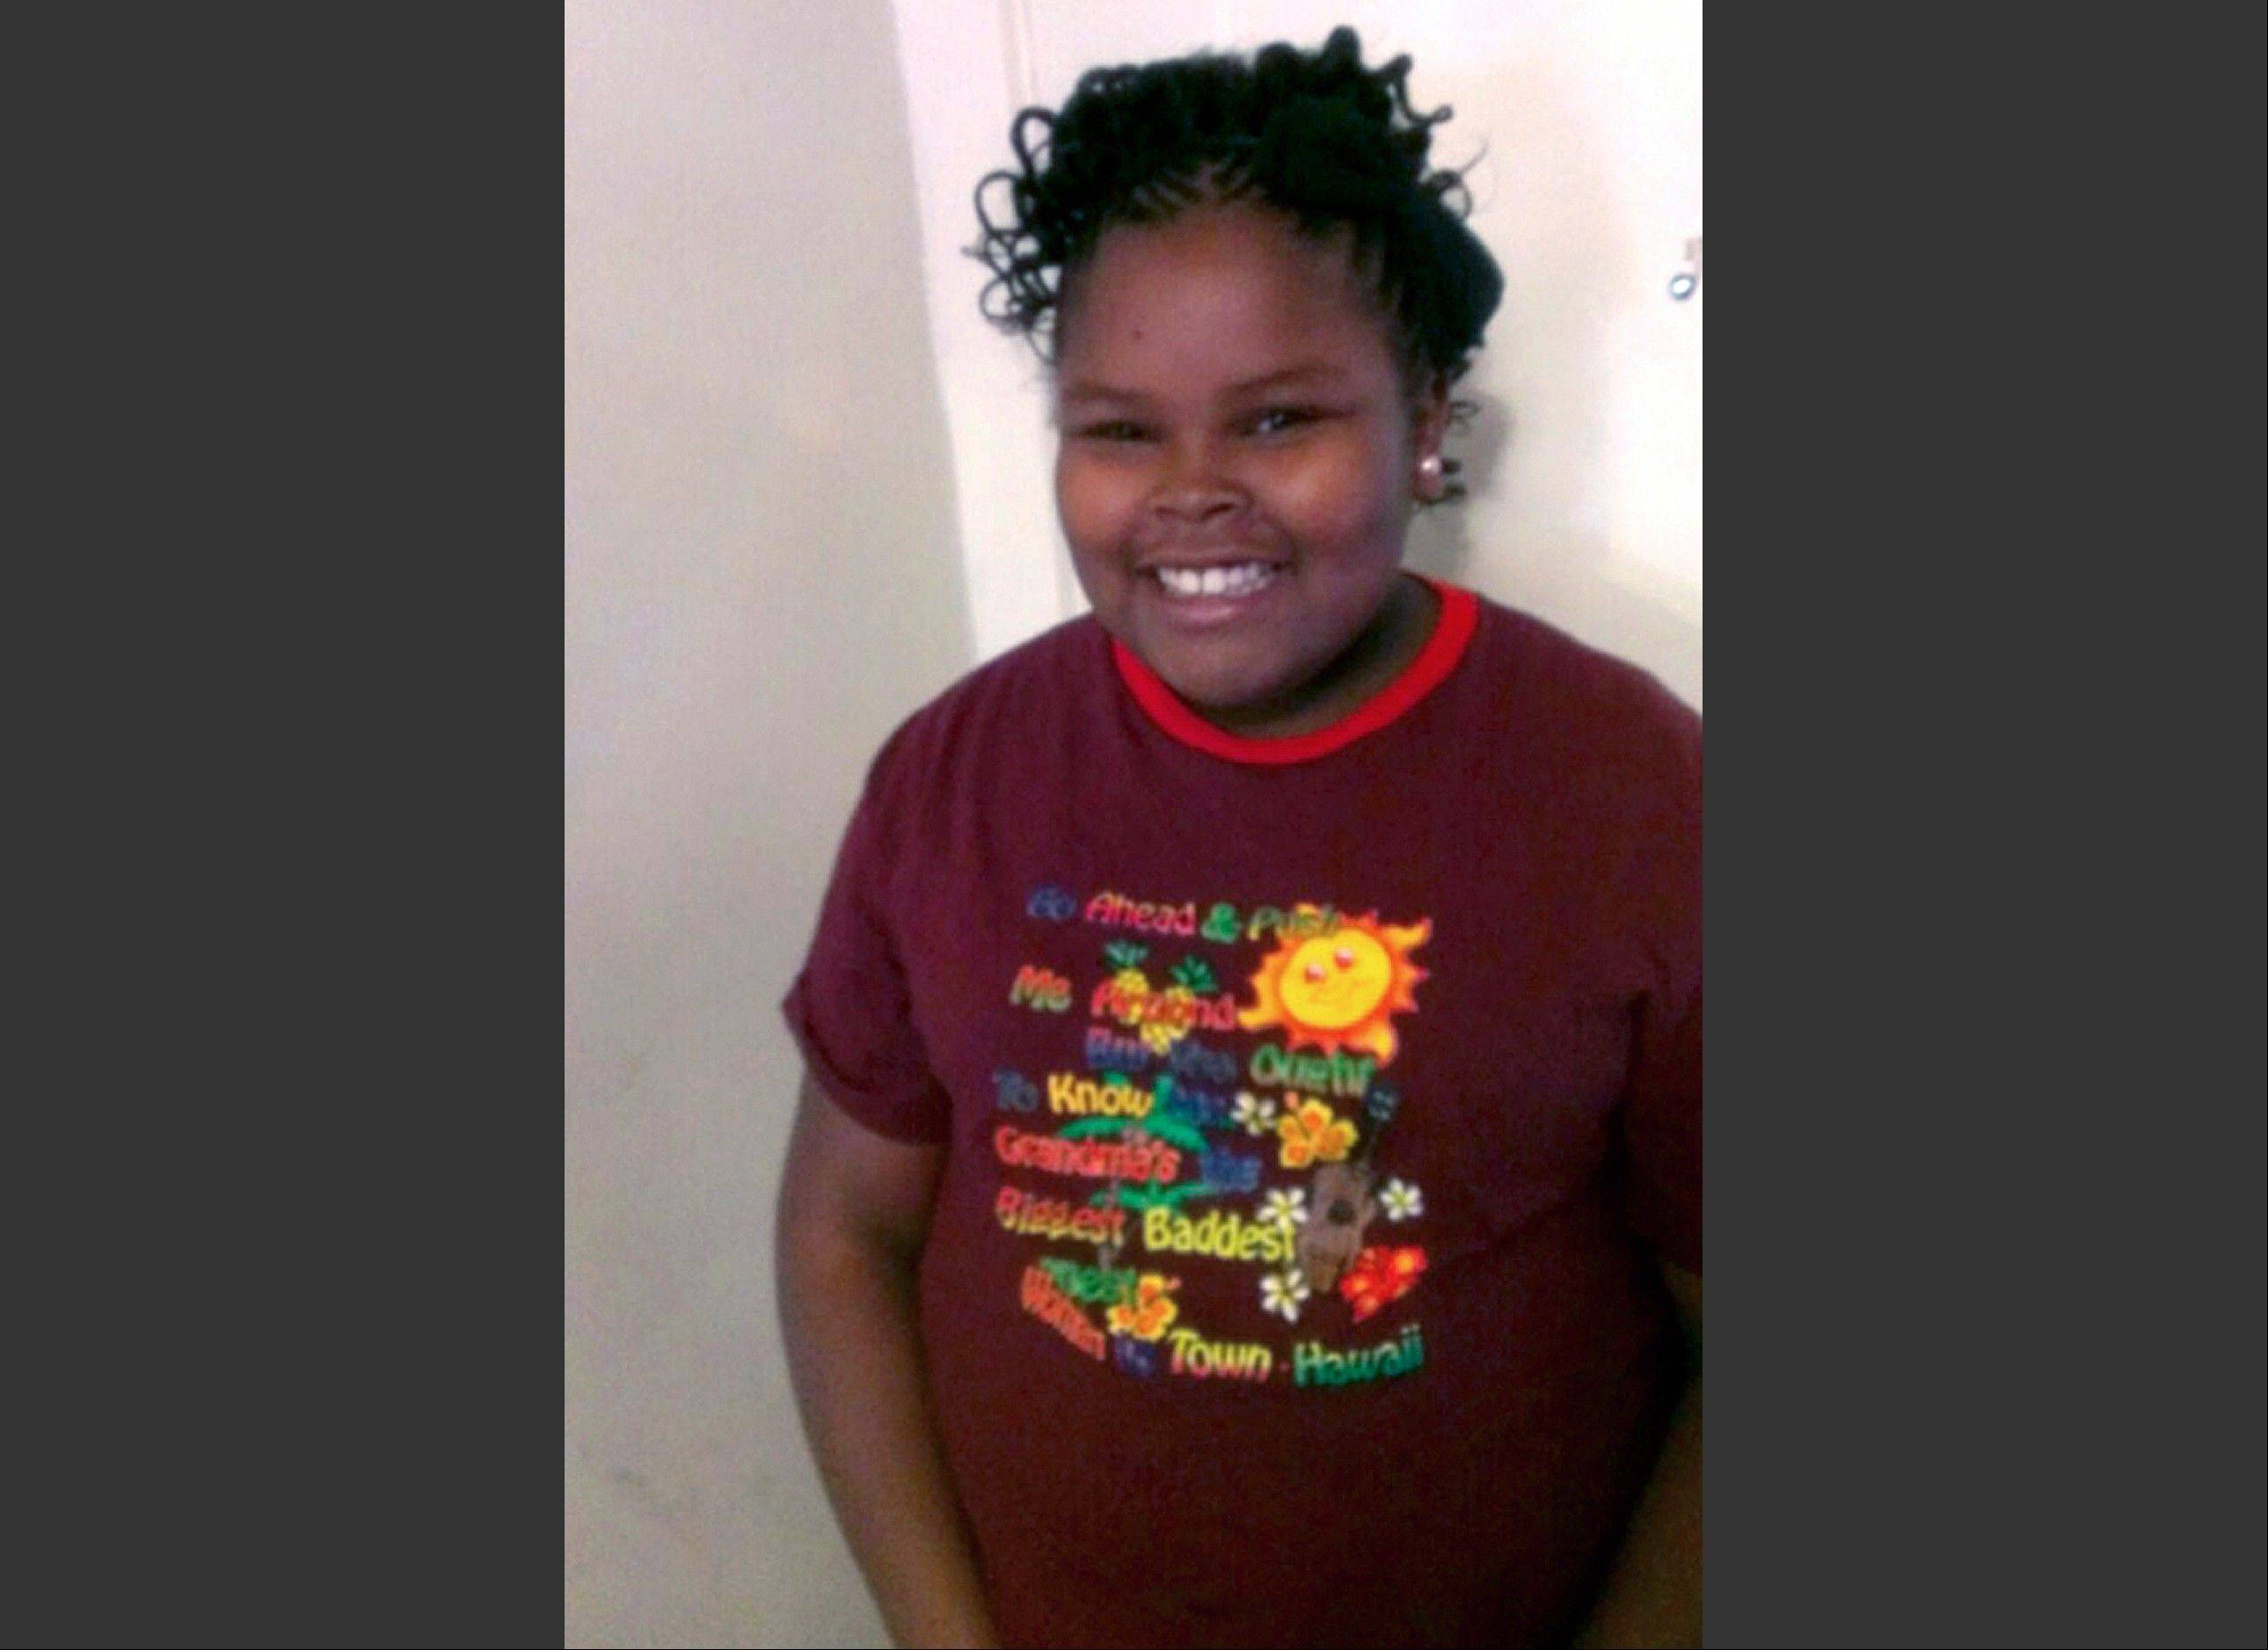 Jahi McMath. The family attorney of the California girl declared brain dead after a tonsillectomy says she has been taken out of Children's Hospital of Oakland. Christopher Dolan tells The Associated Press that McMath left the hospital in a private ambulance shortly before 8 p.m. Sunday Jan. 5, 2014.